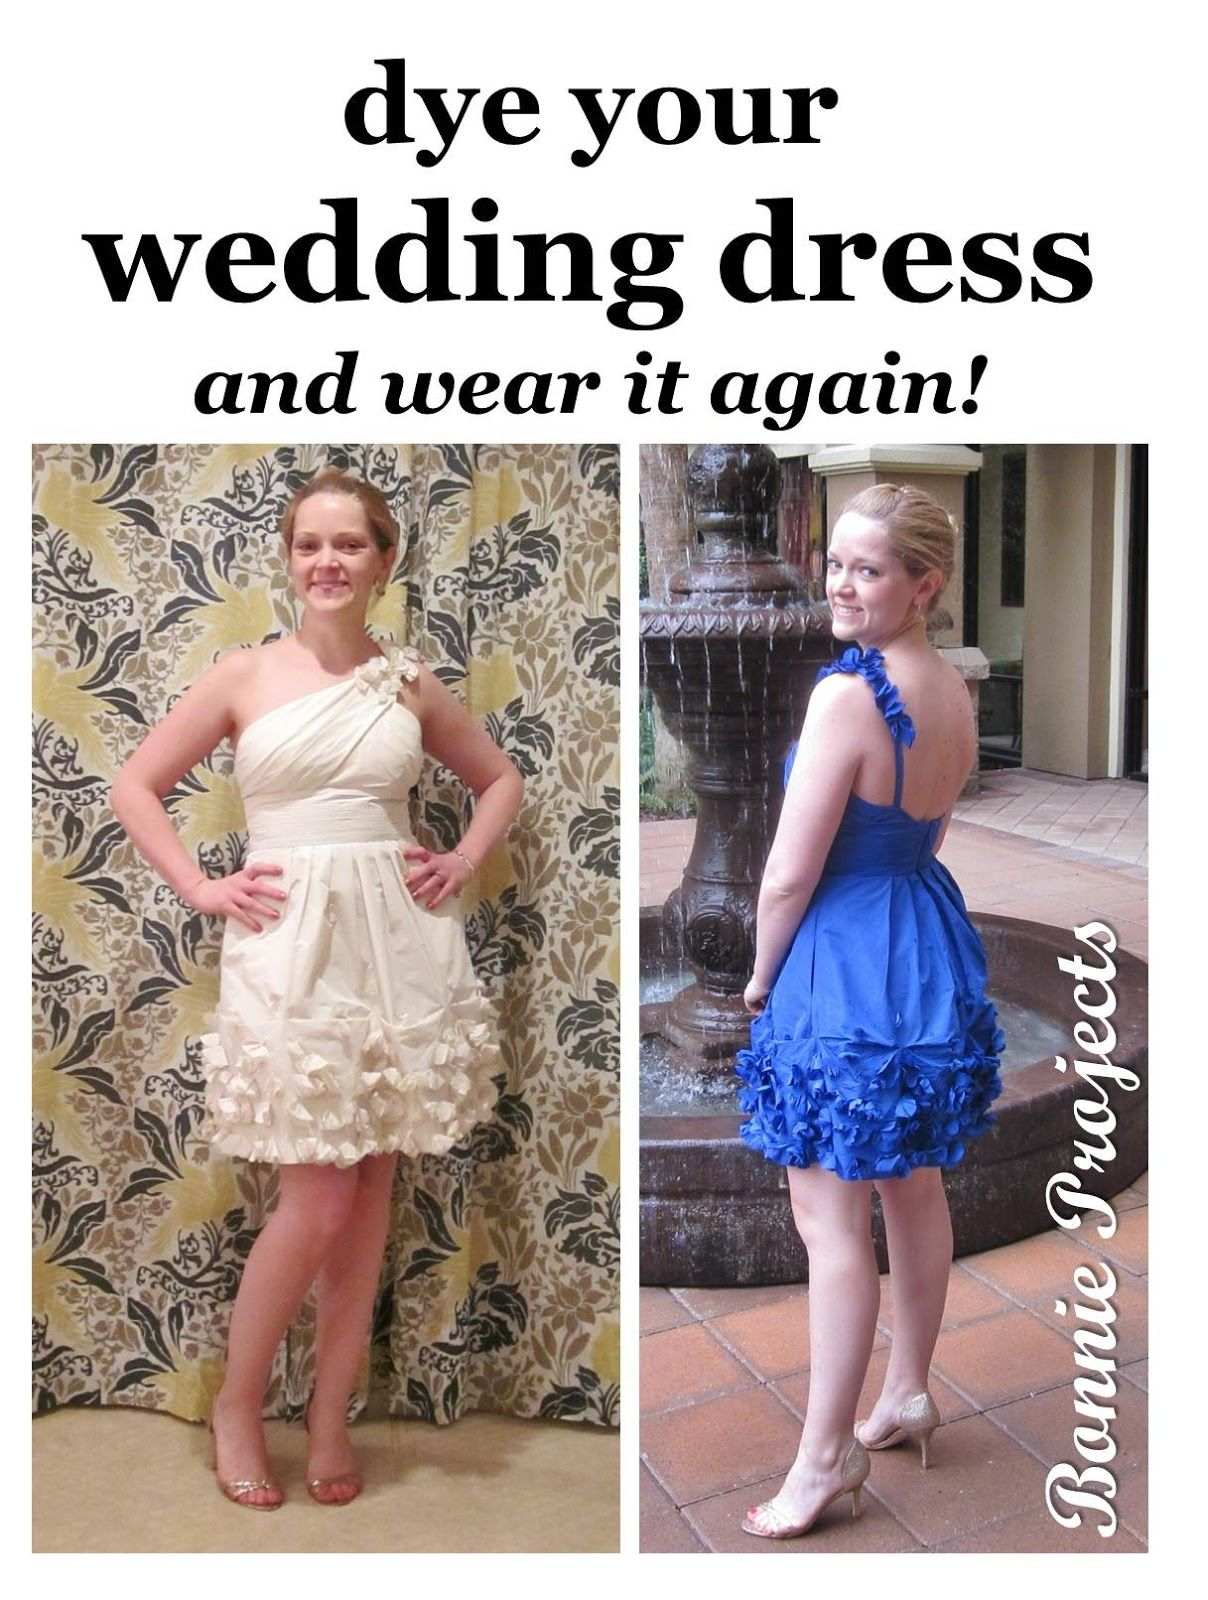 Bonnie projects dye your wedding dress and wear it again bonnie projects dye your wedding dress and wear it again ombrellifo Choice Image